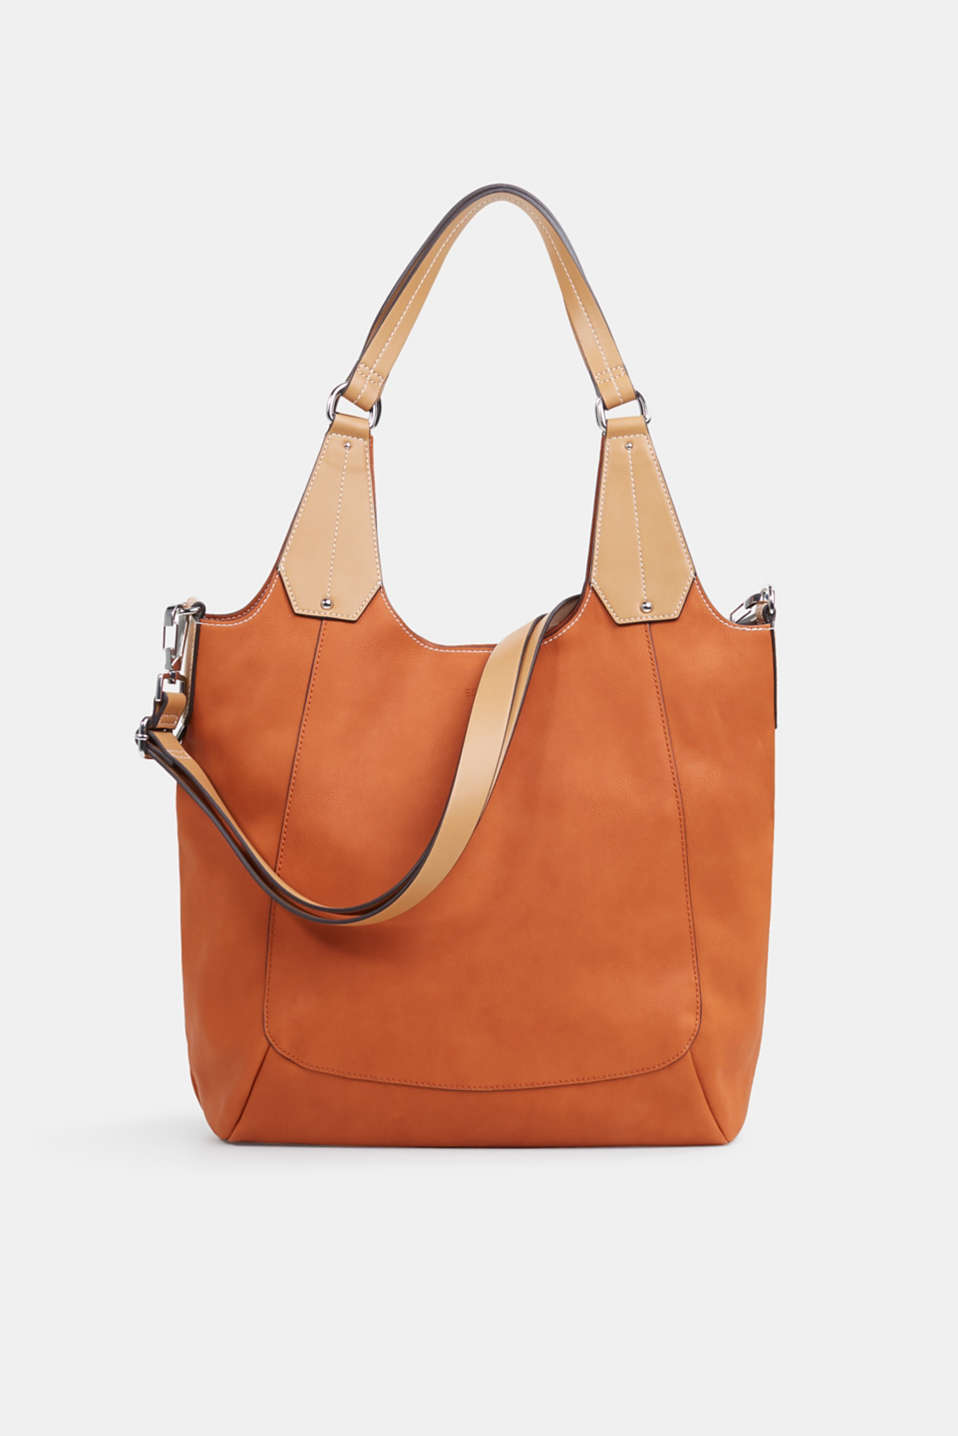 Esprit - XL shopper in faux leather, vegan